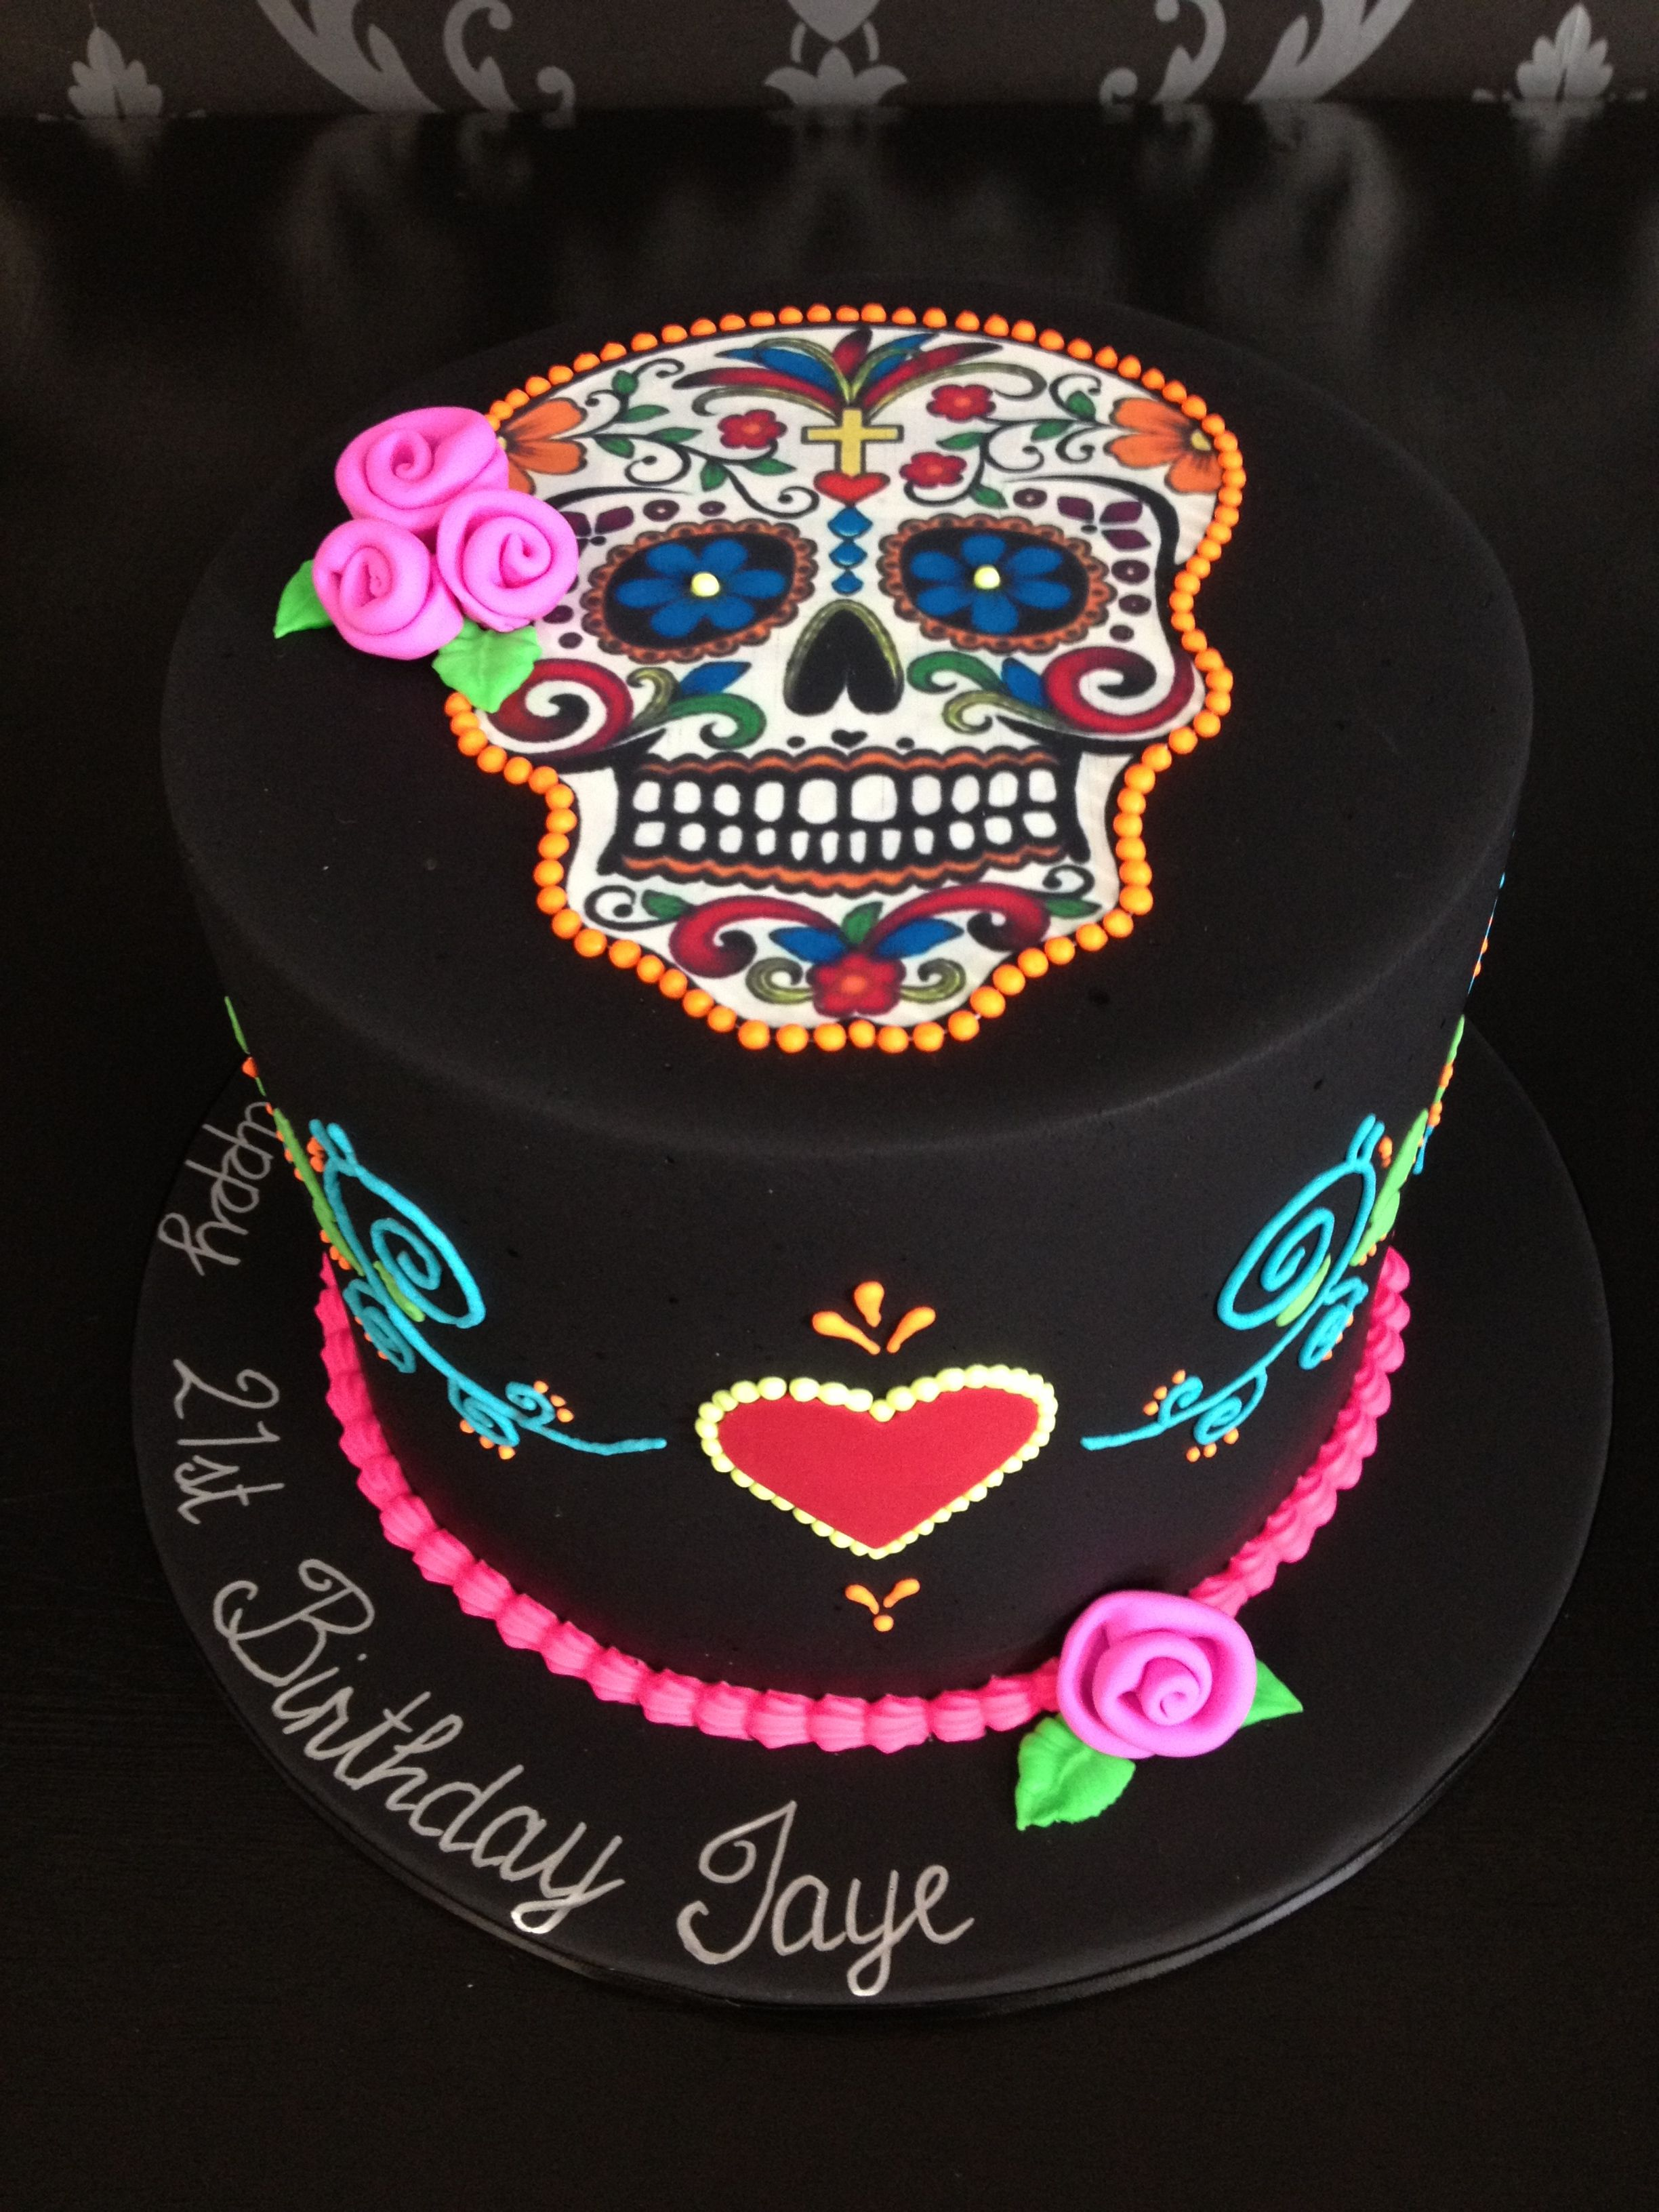 Day Of The Dead Themed Cake With Fluorescent Colour Details With